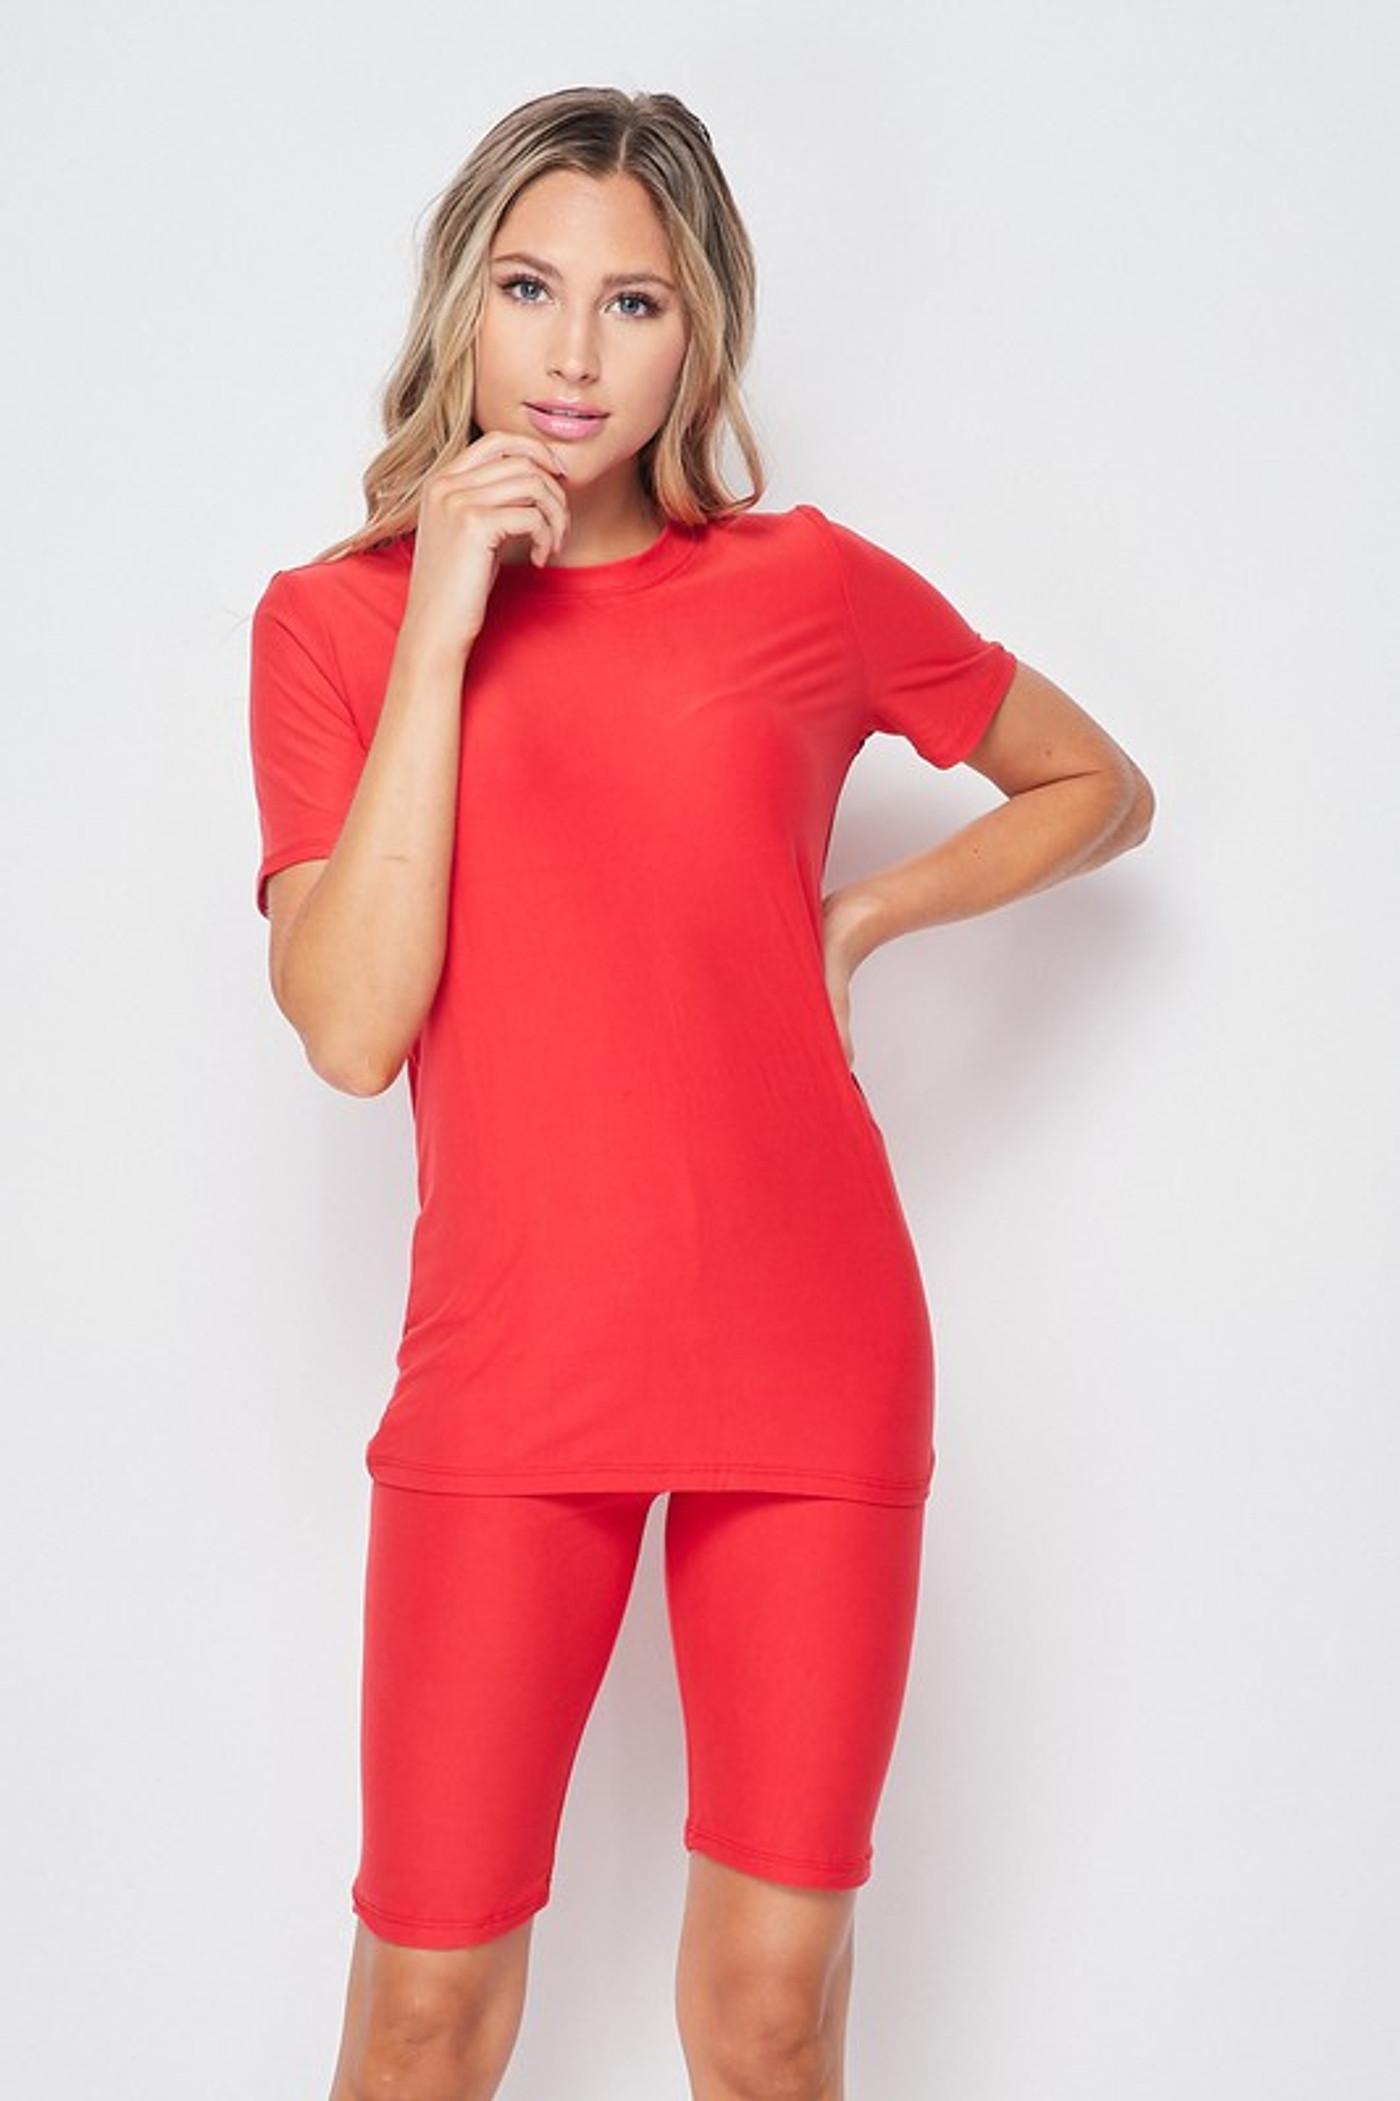 Red Double Brushed Basic Solid Biker Shorts and T-Shirt Set